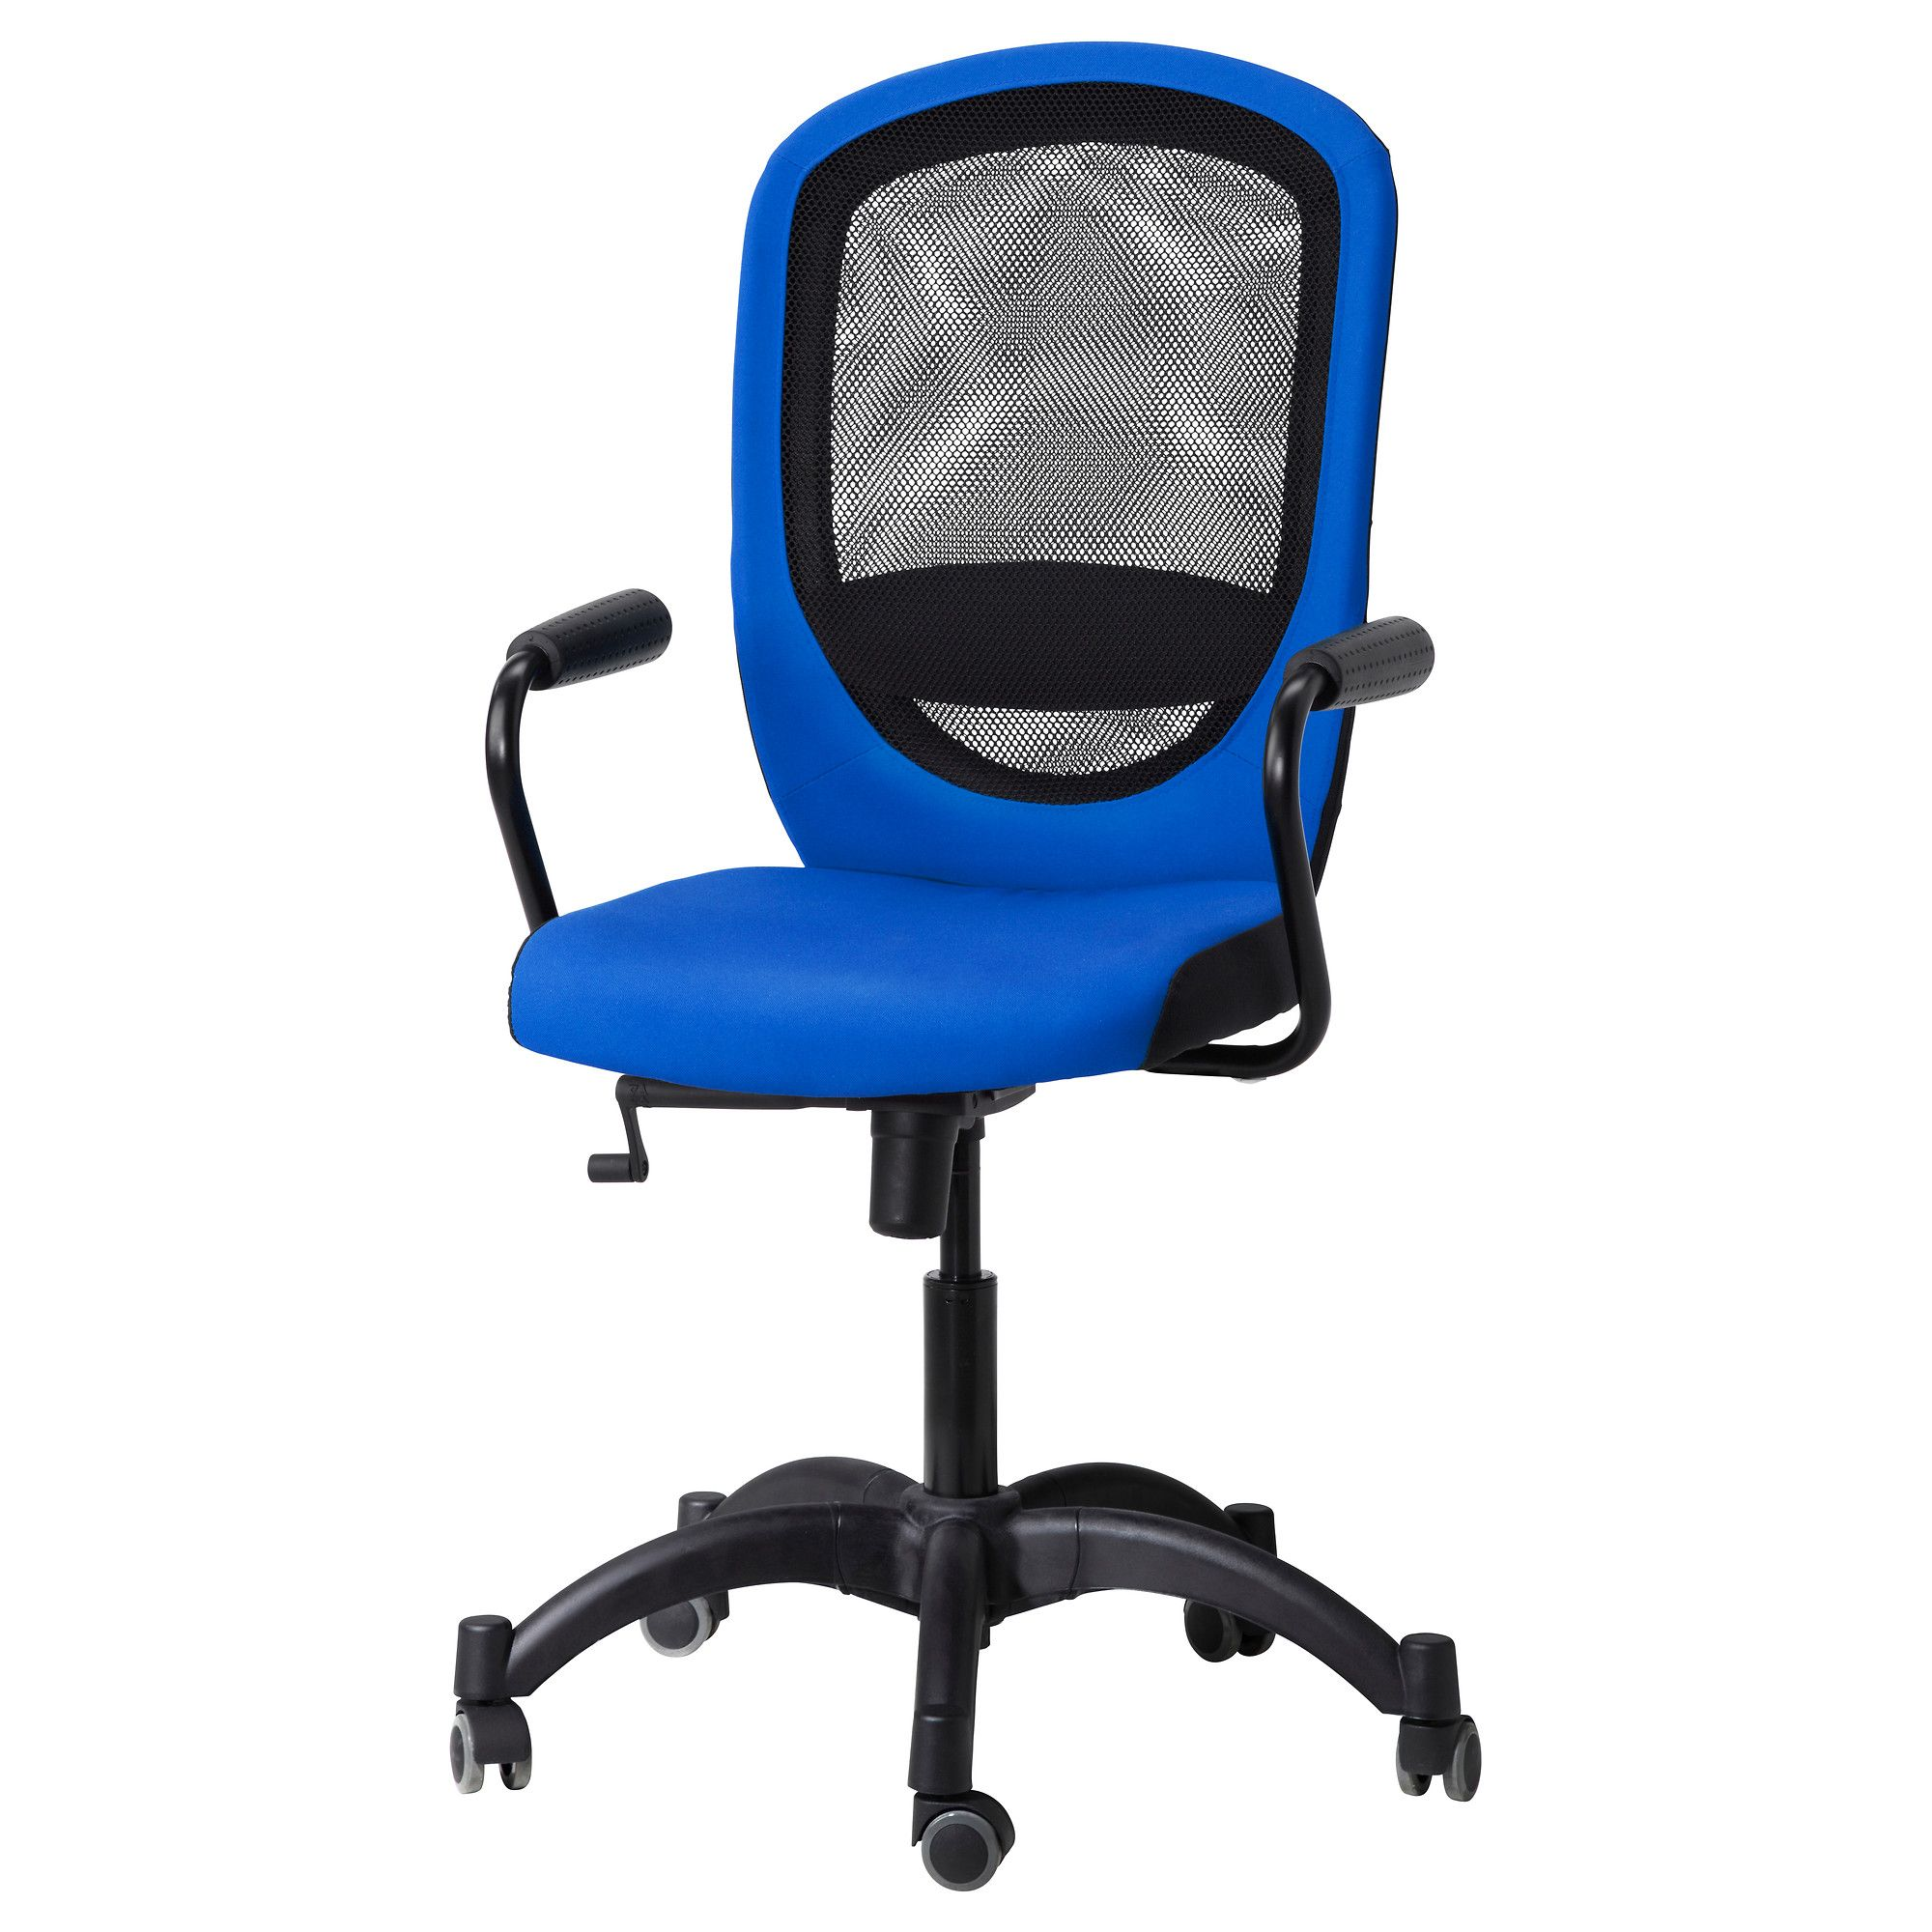 Fingal Swivel Chair Vilgot Nominell Swivel Chair With Armrests Blue Ikea Price